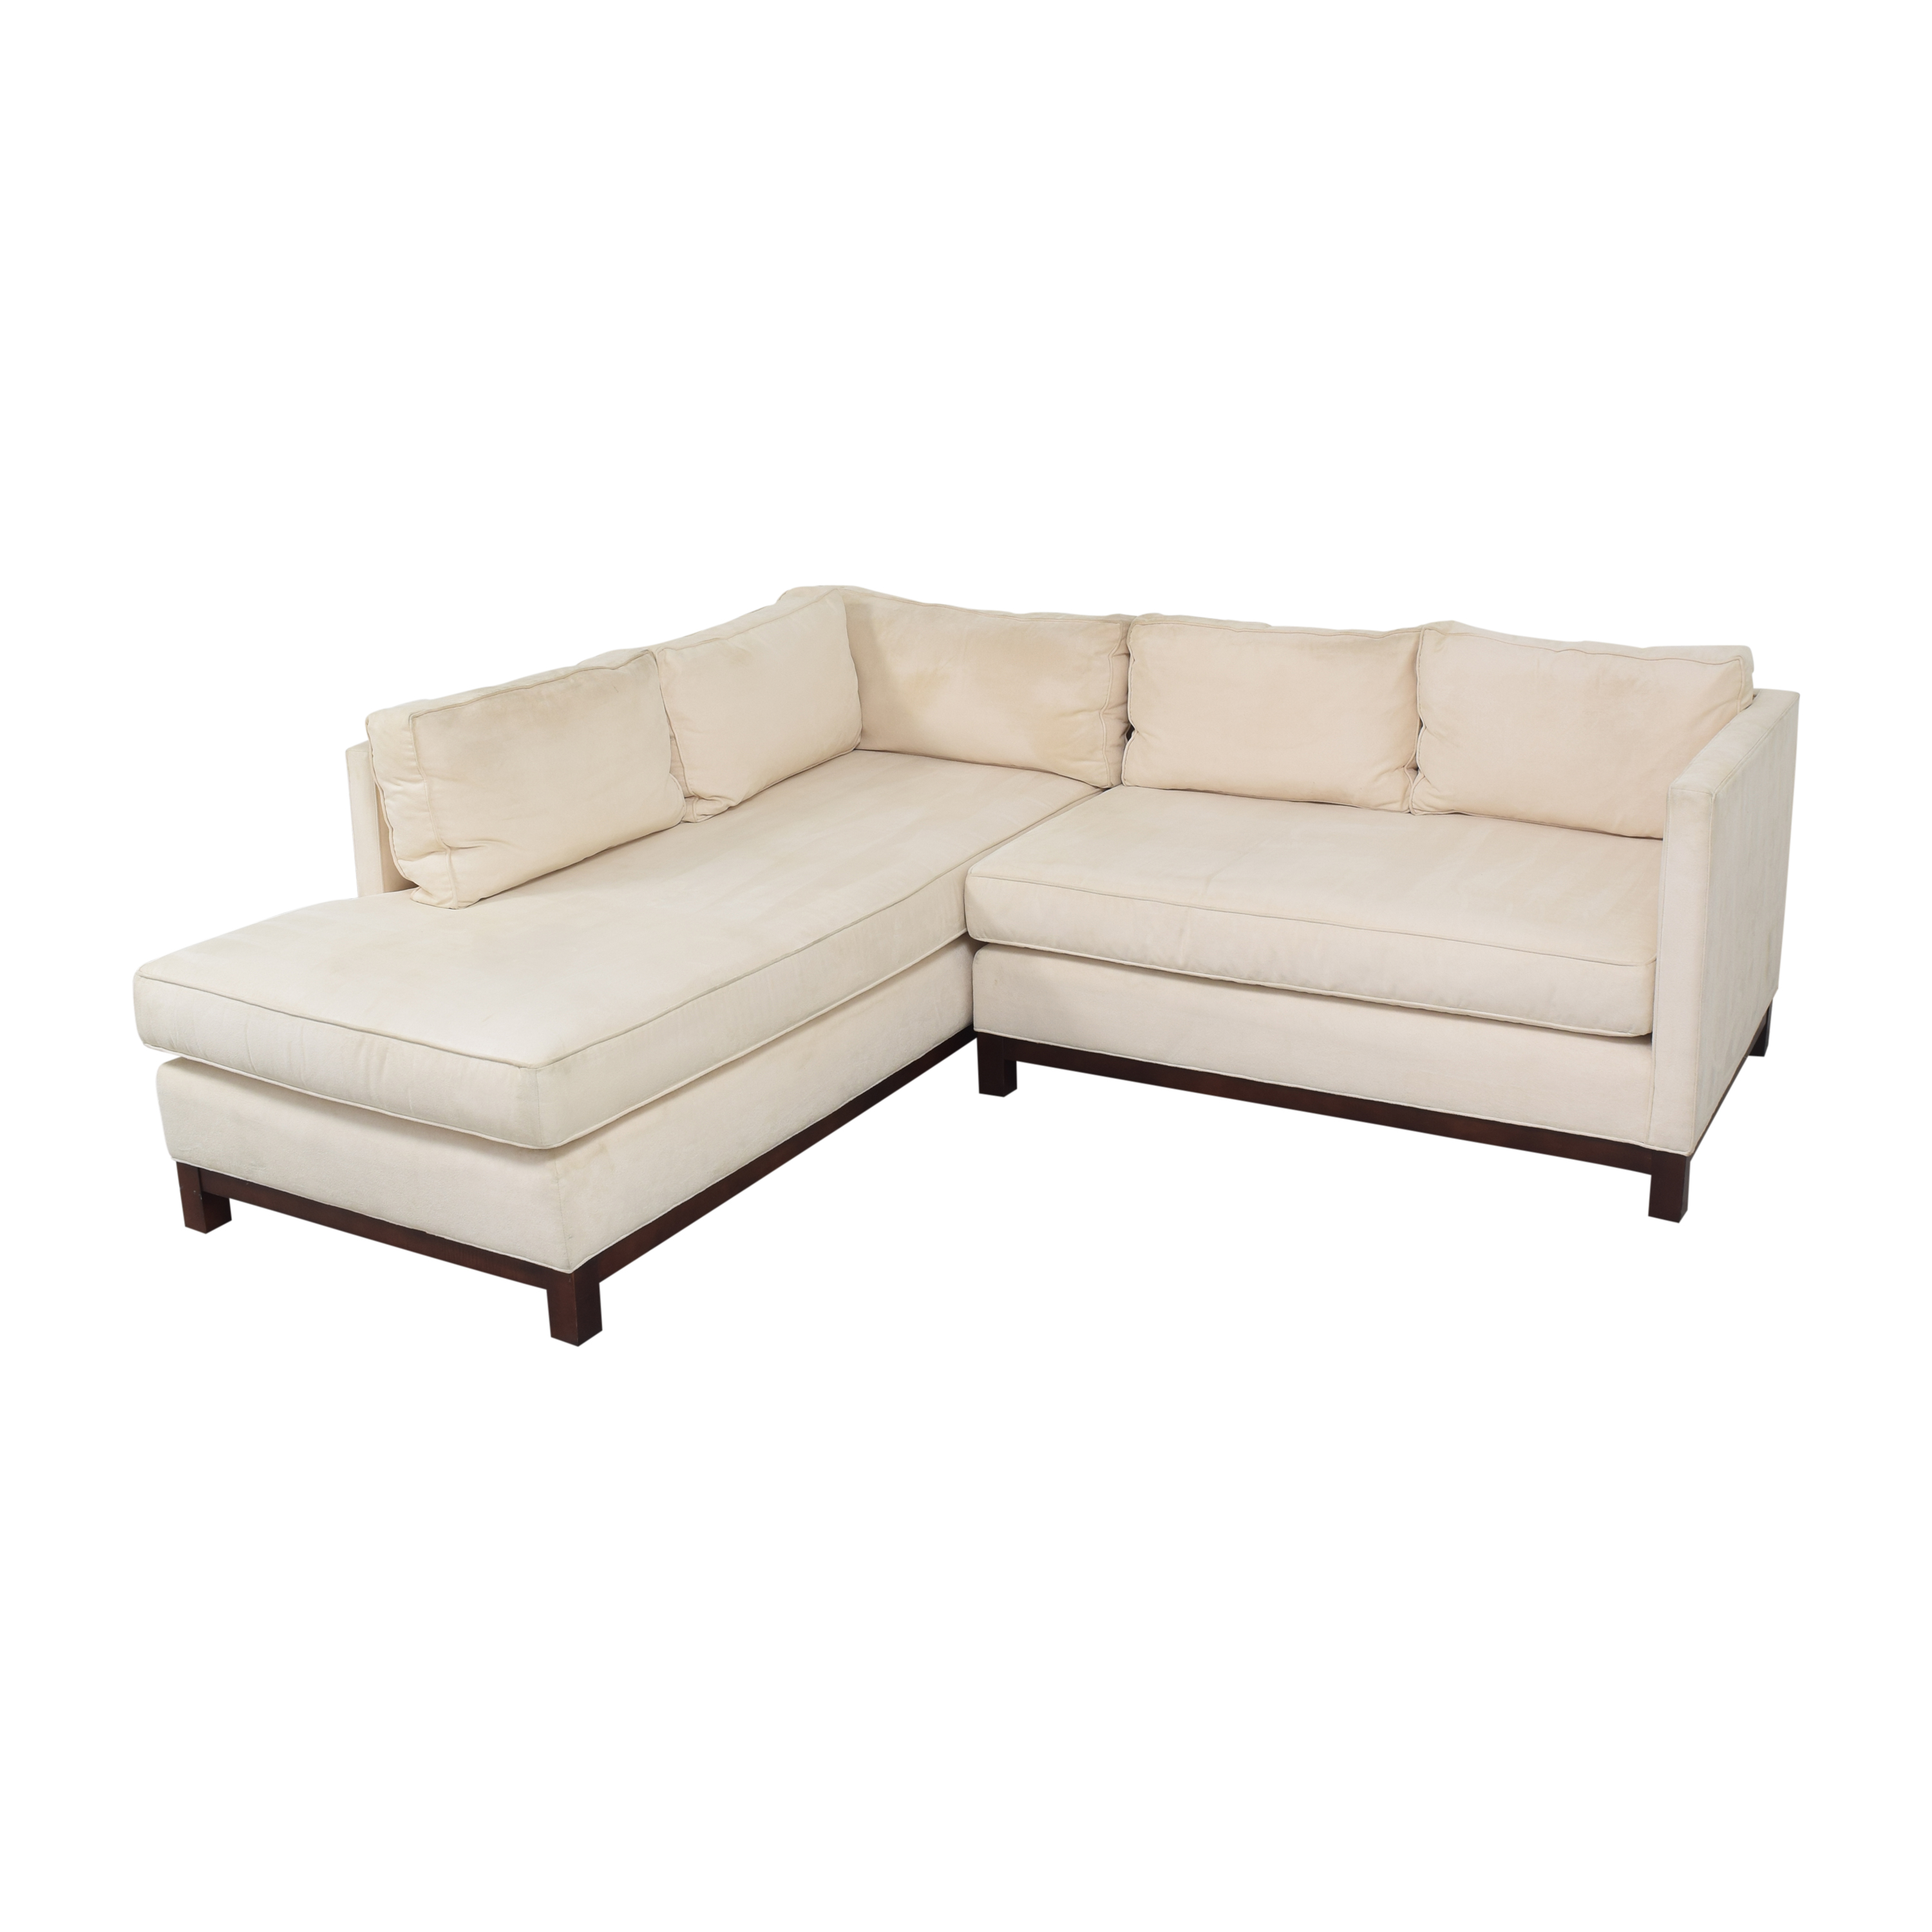 Mitchell Gold + Bob Williams Mitchell Gold + Bob Williams Clifton Chaise Sectional Sofa on sale